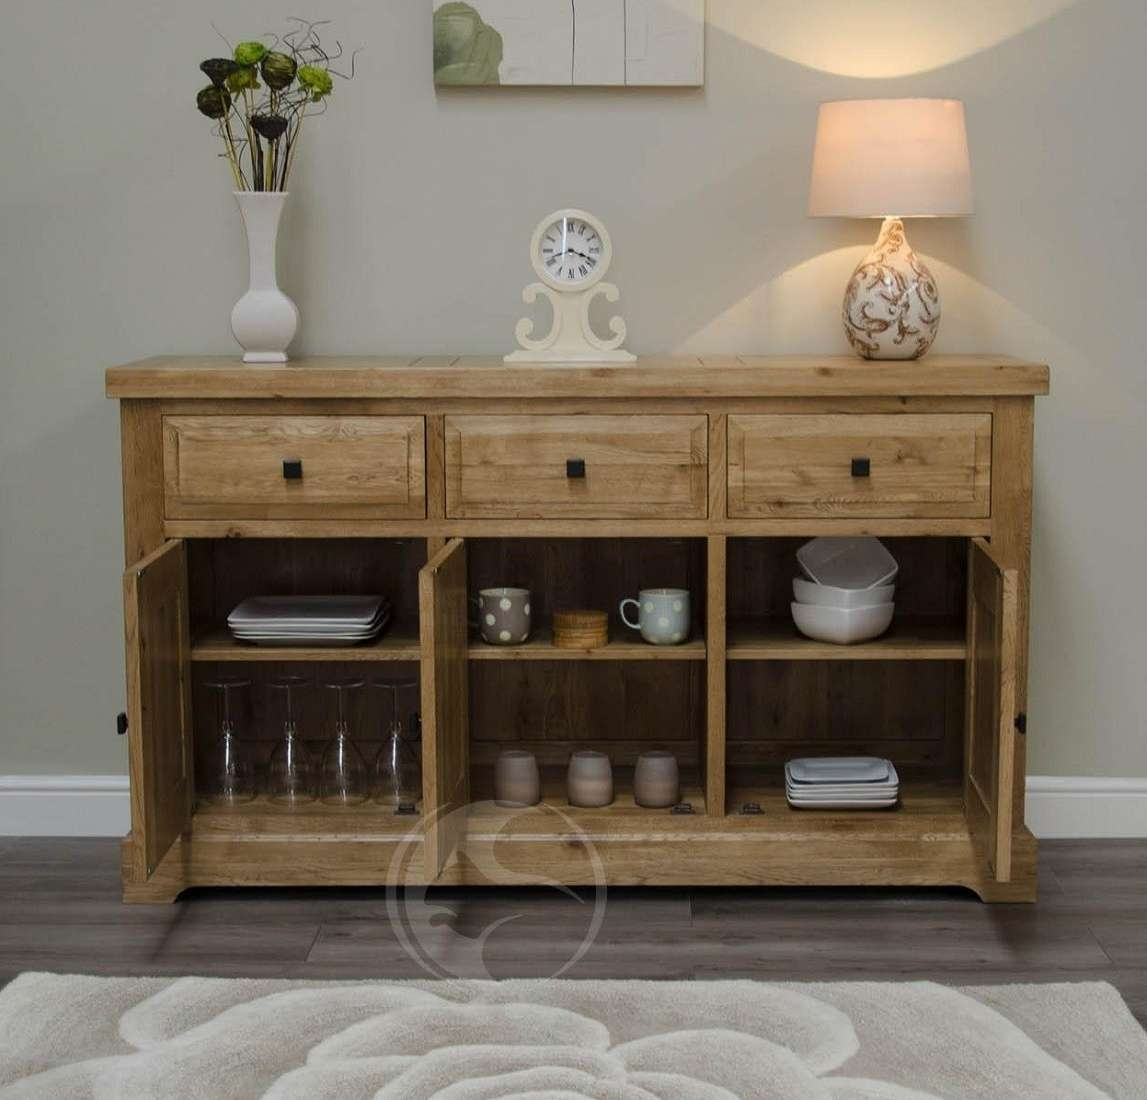 Coniston Rustic Solid Oak Large Sideboard | Oak Furniture Uk Inside Rustic Oak Large Sideboards (View 3 of 20)